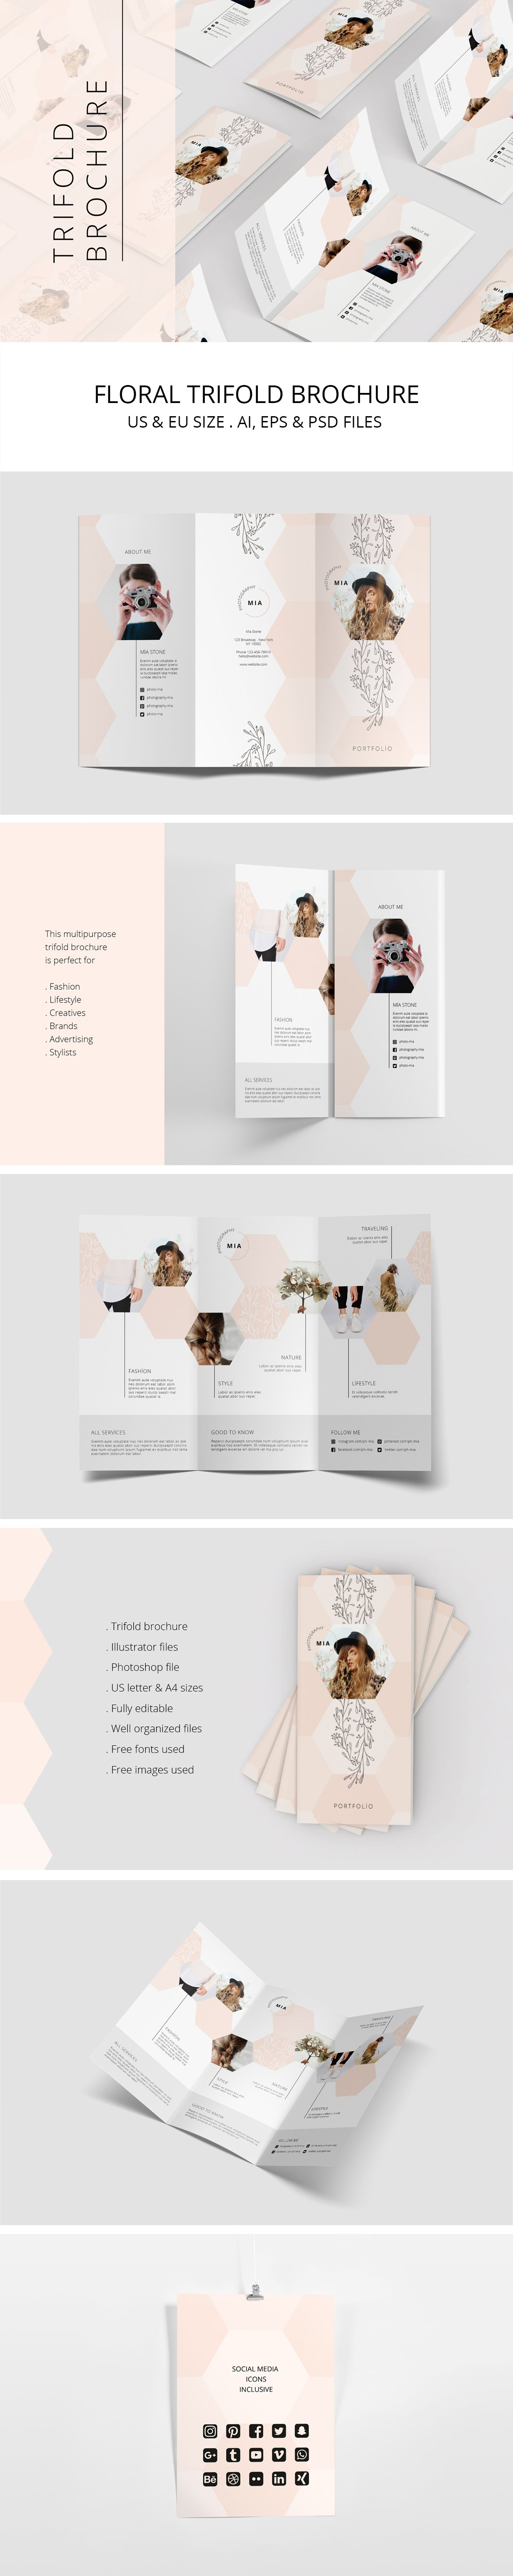 20 professional tri fold brochure templates to help you stand out